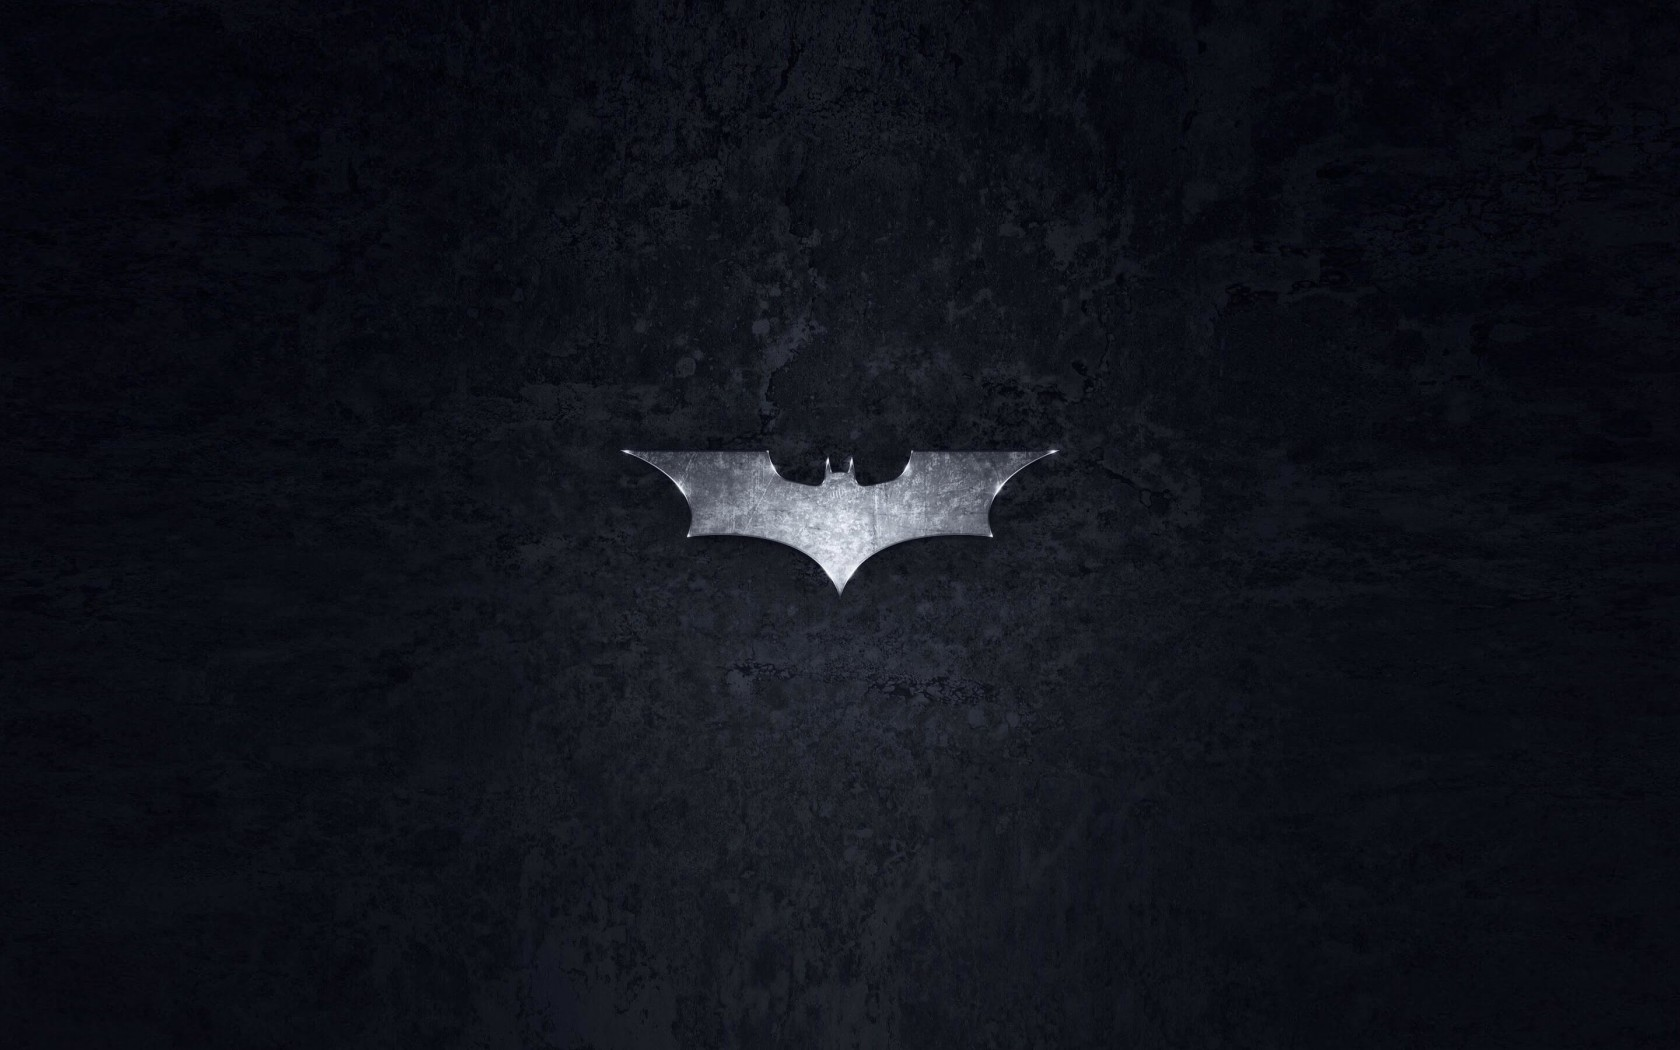 Grungy Batman Dark Knight Logo Wallpaper for Desktop 1680x1050